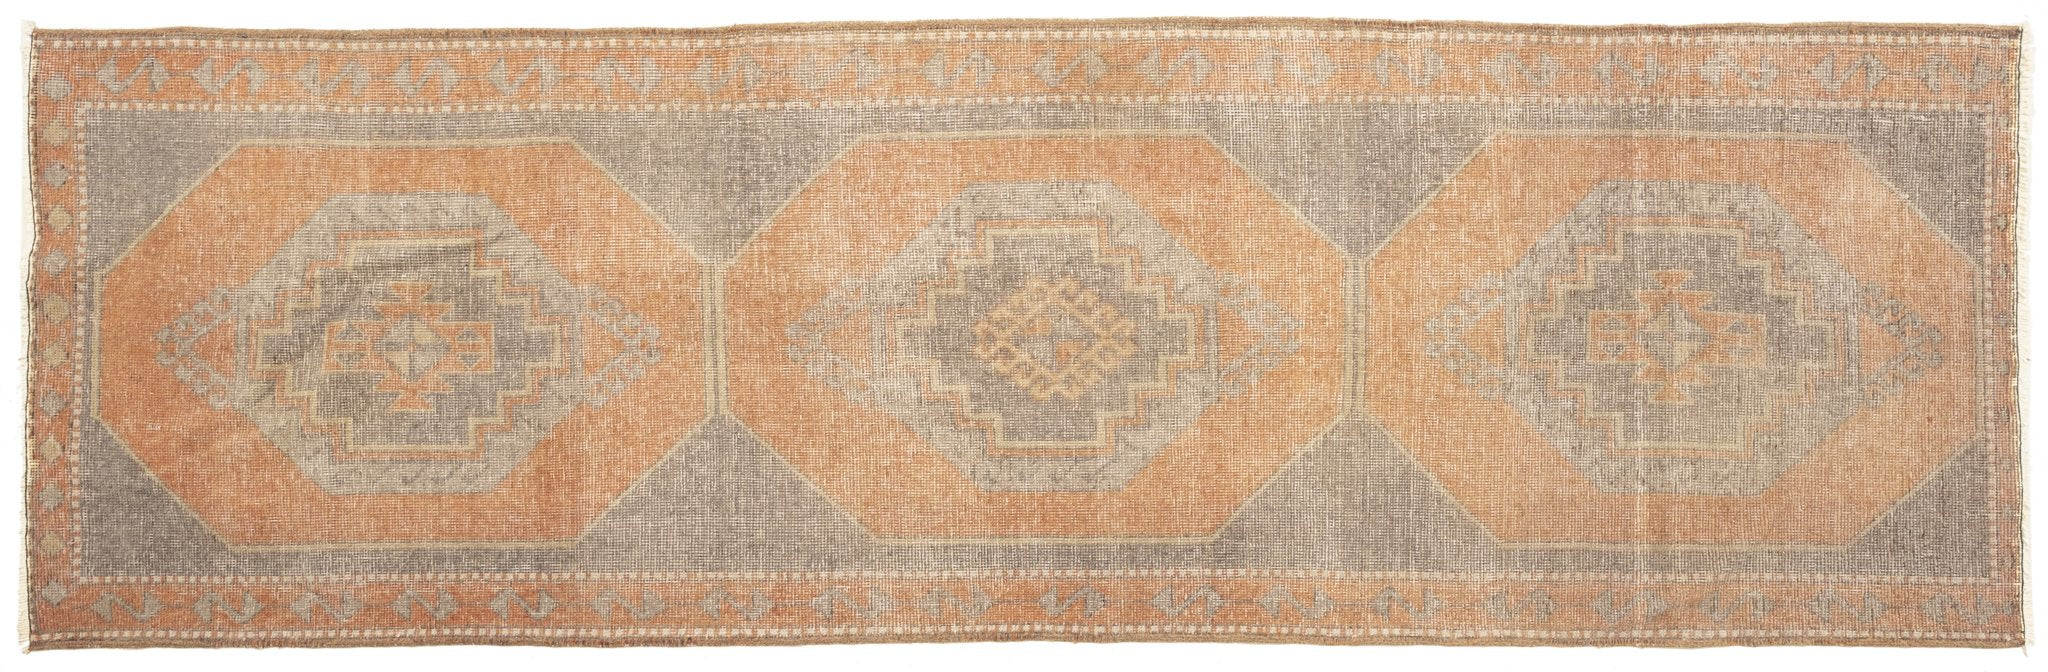 Vintage Turkish Runner Rug Almuth